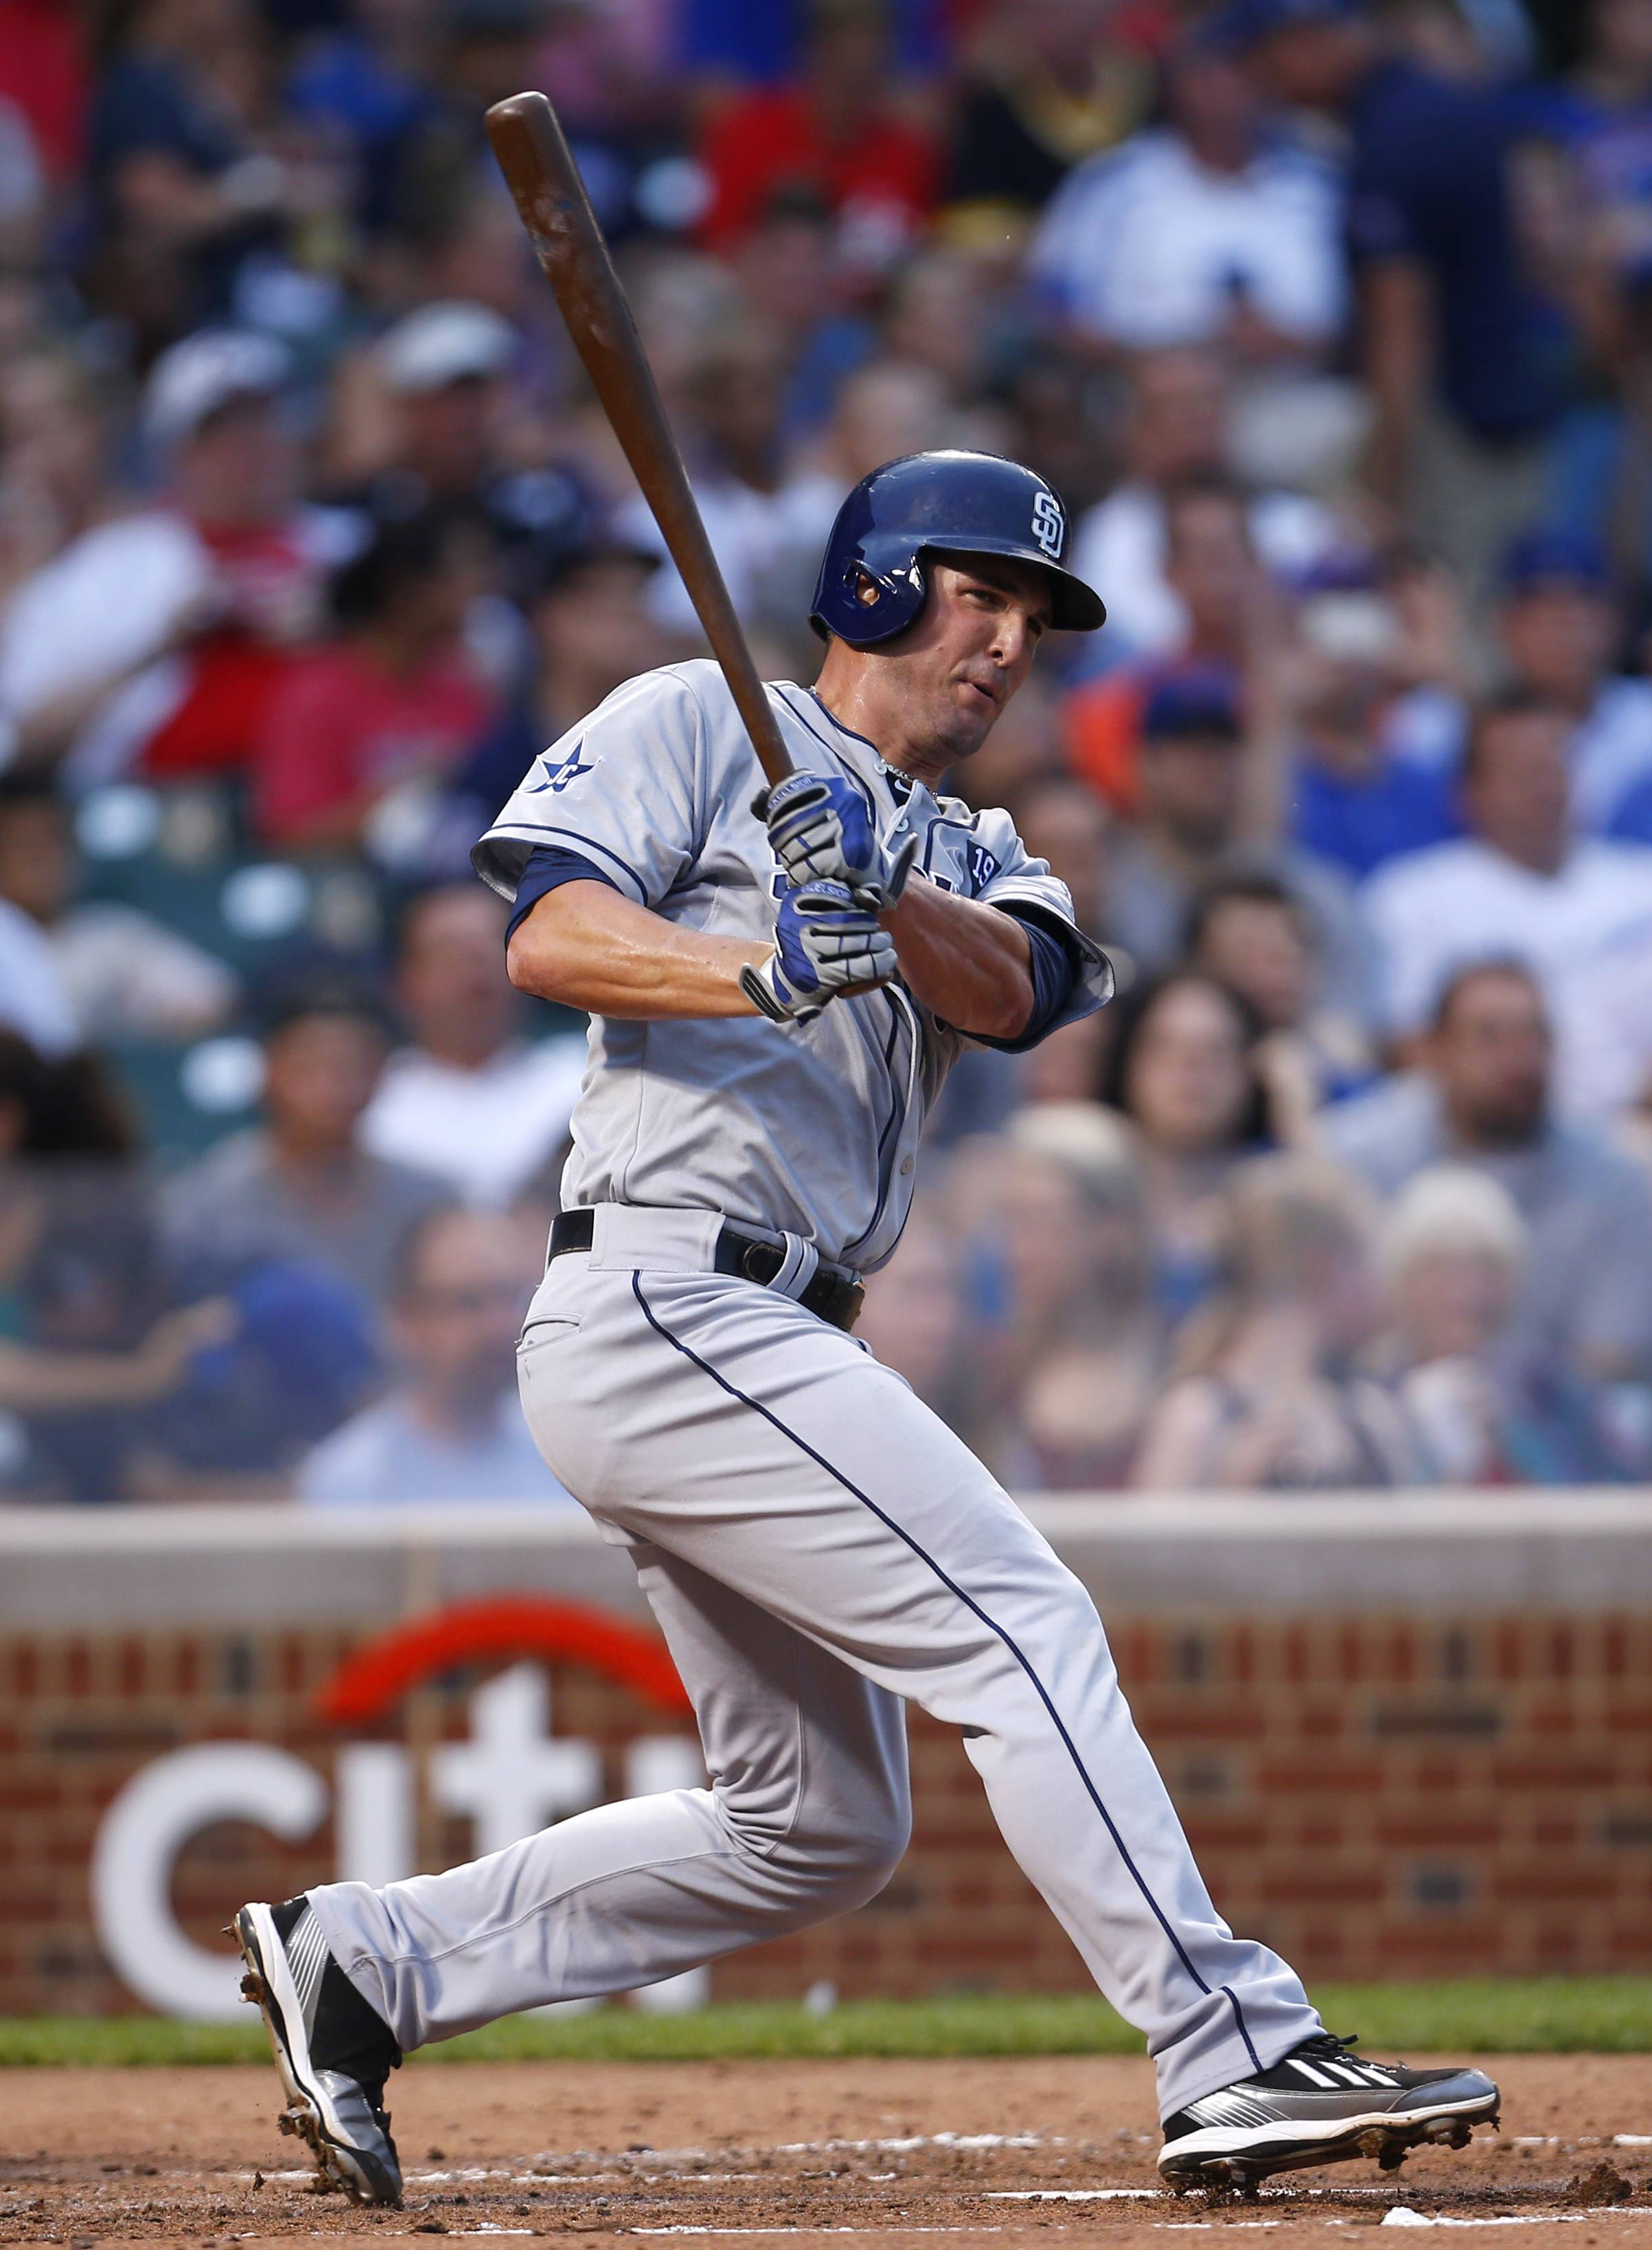 Padres first baseman and Hampshire grad Jake Goebbert makes a line-drive out in the second inning Tuesday at Wrigley Field. Goebbert was called up when San Diego's regular first baseman, Yonder Alonso, went on the disabled list in mid-June.